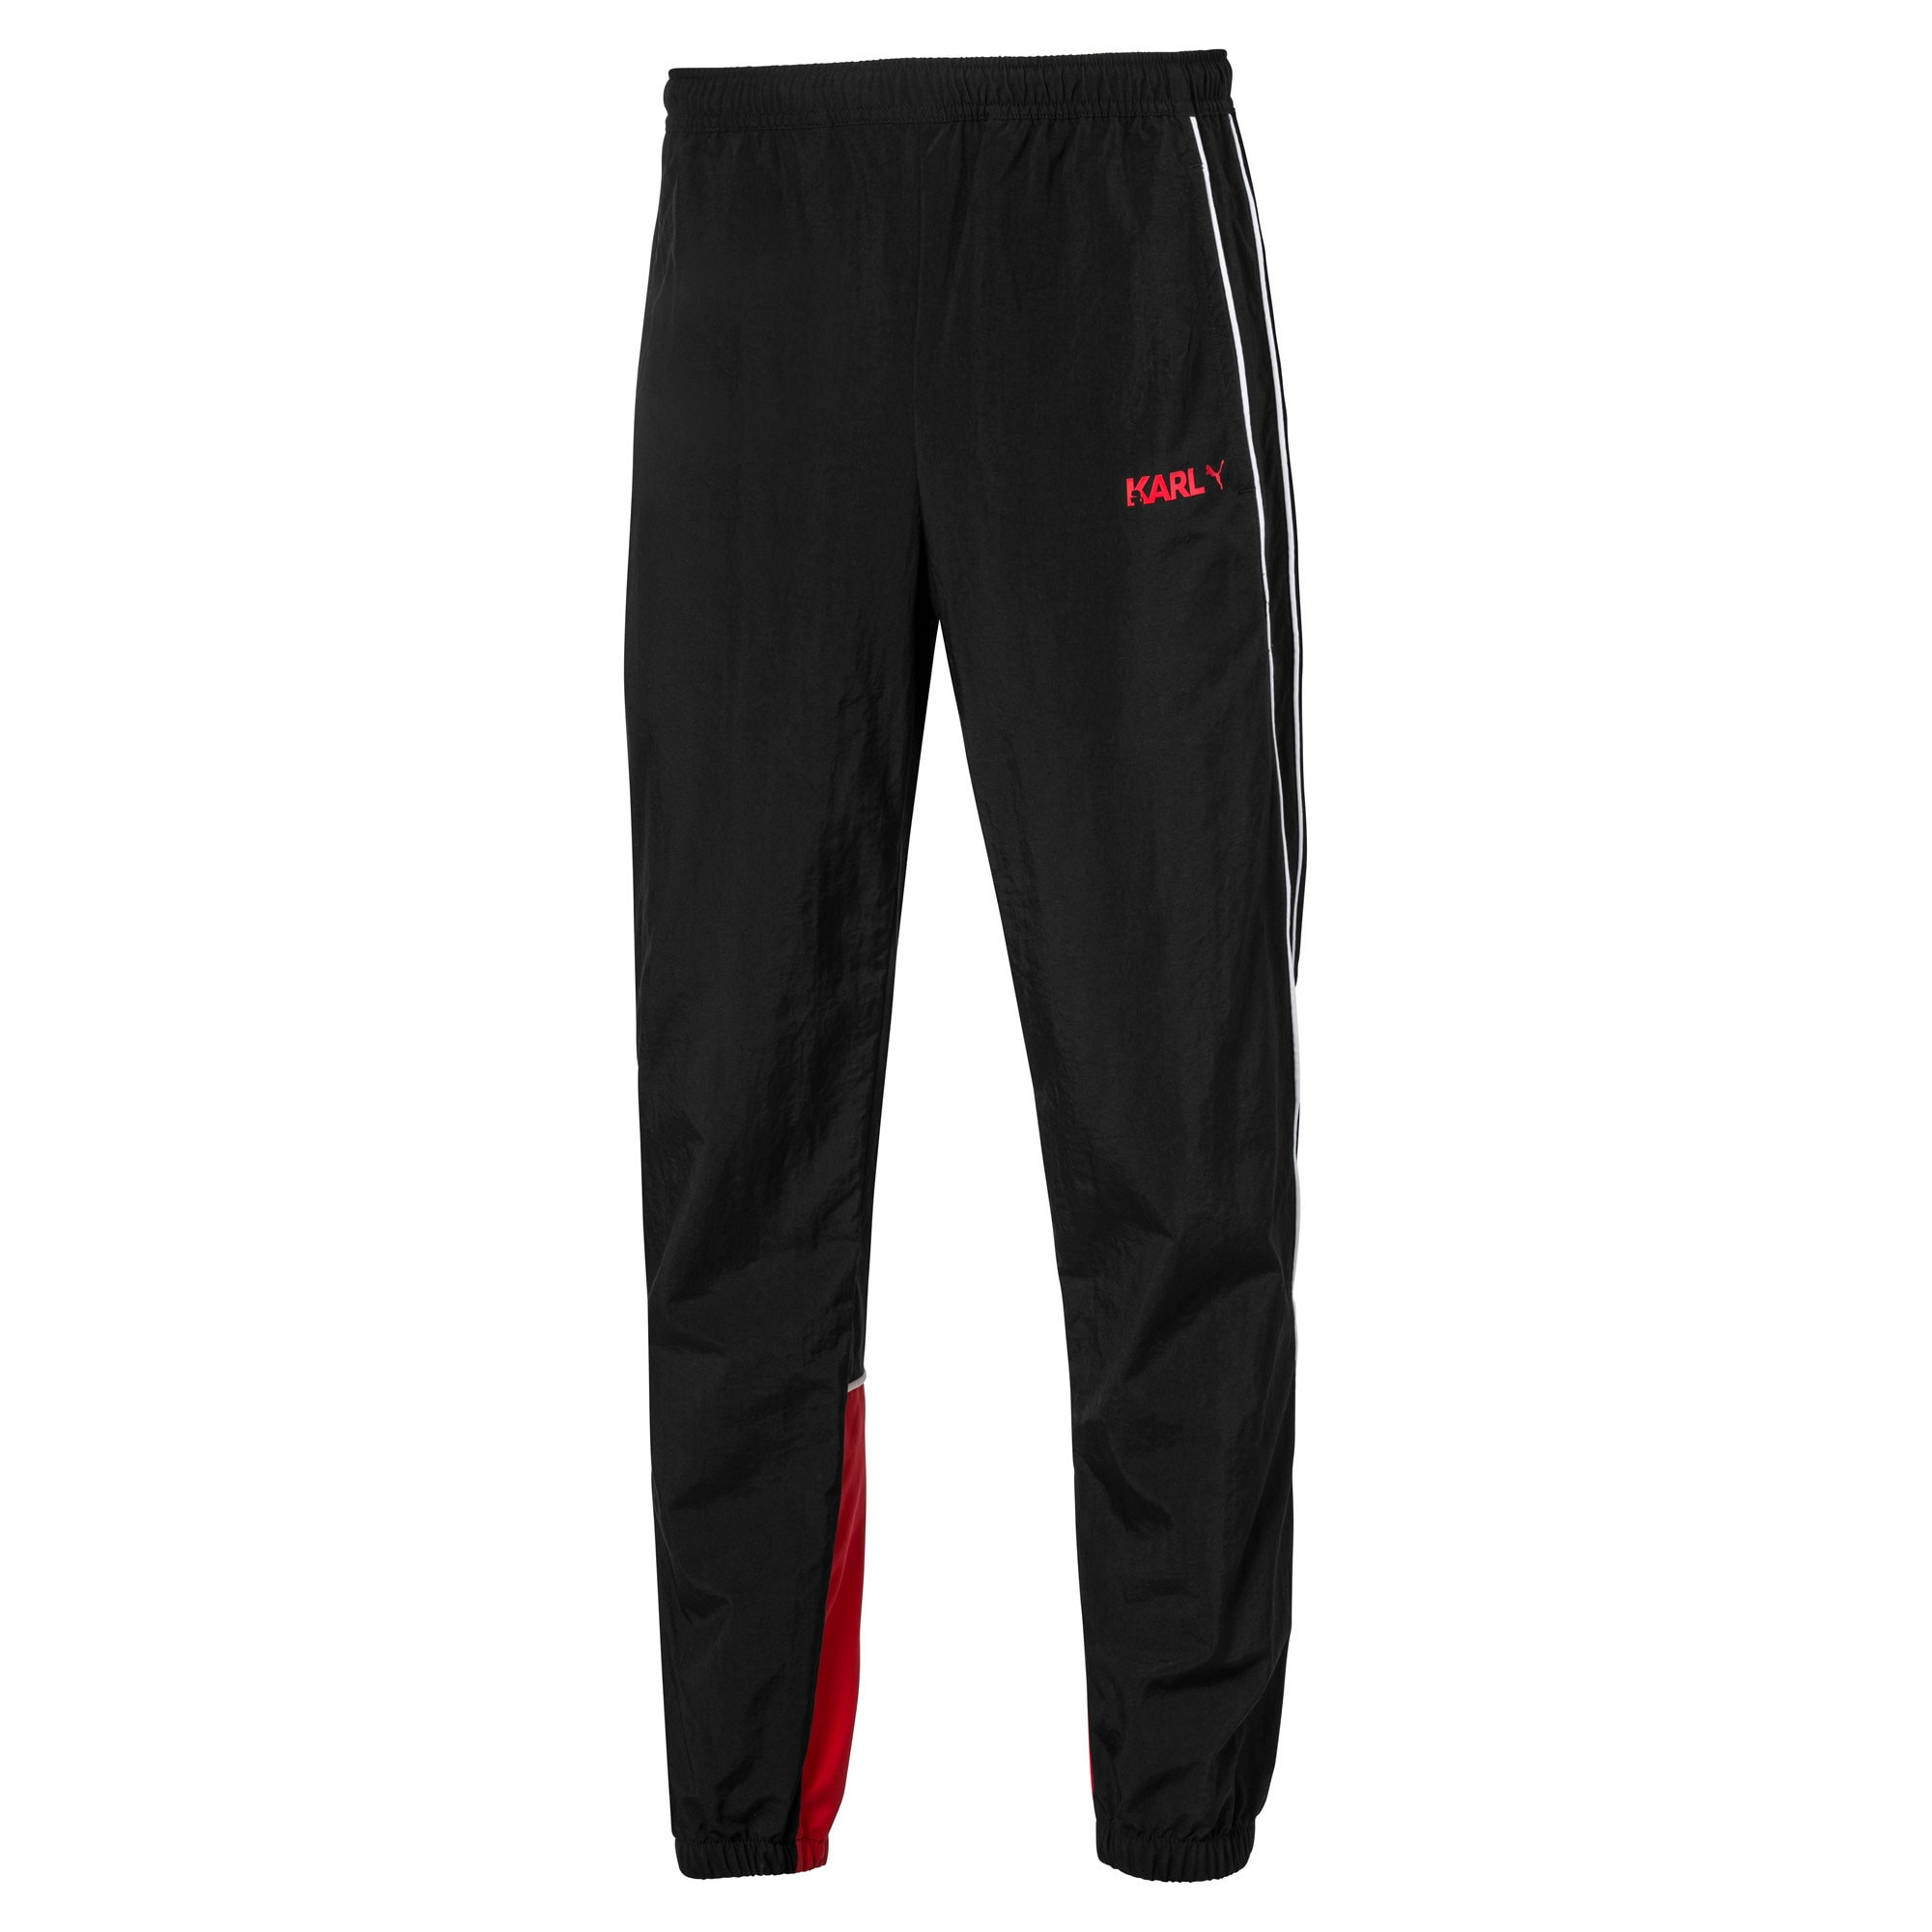 Thumbnail 4 of PUMA x KARL LAGERFELD Knitted Men's Track Pants, Puma Black, medium